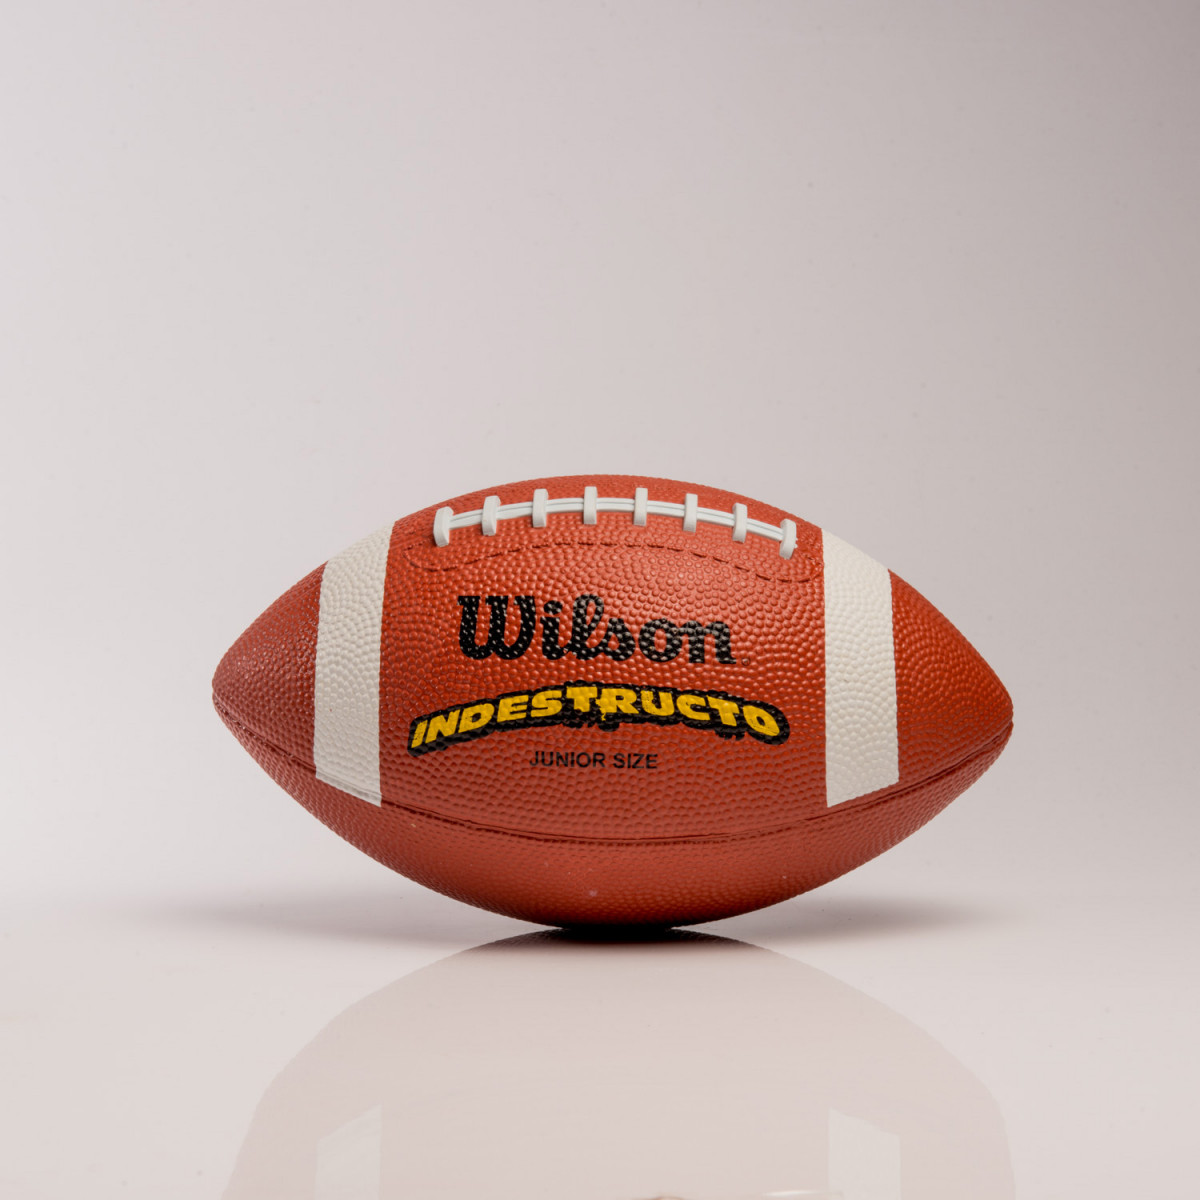 PELOTA WILSON TN JR FOOTBALL